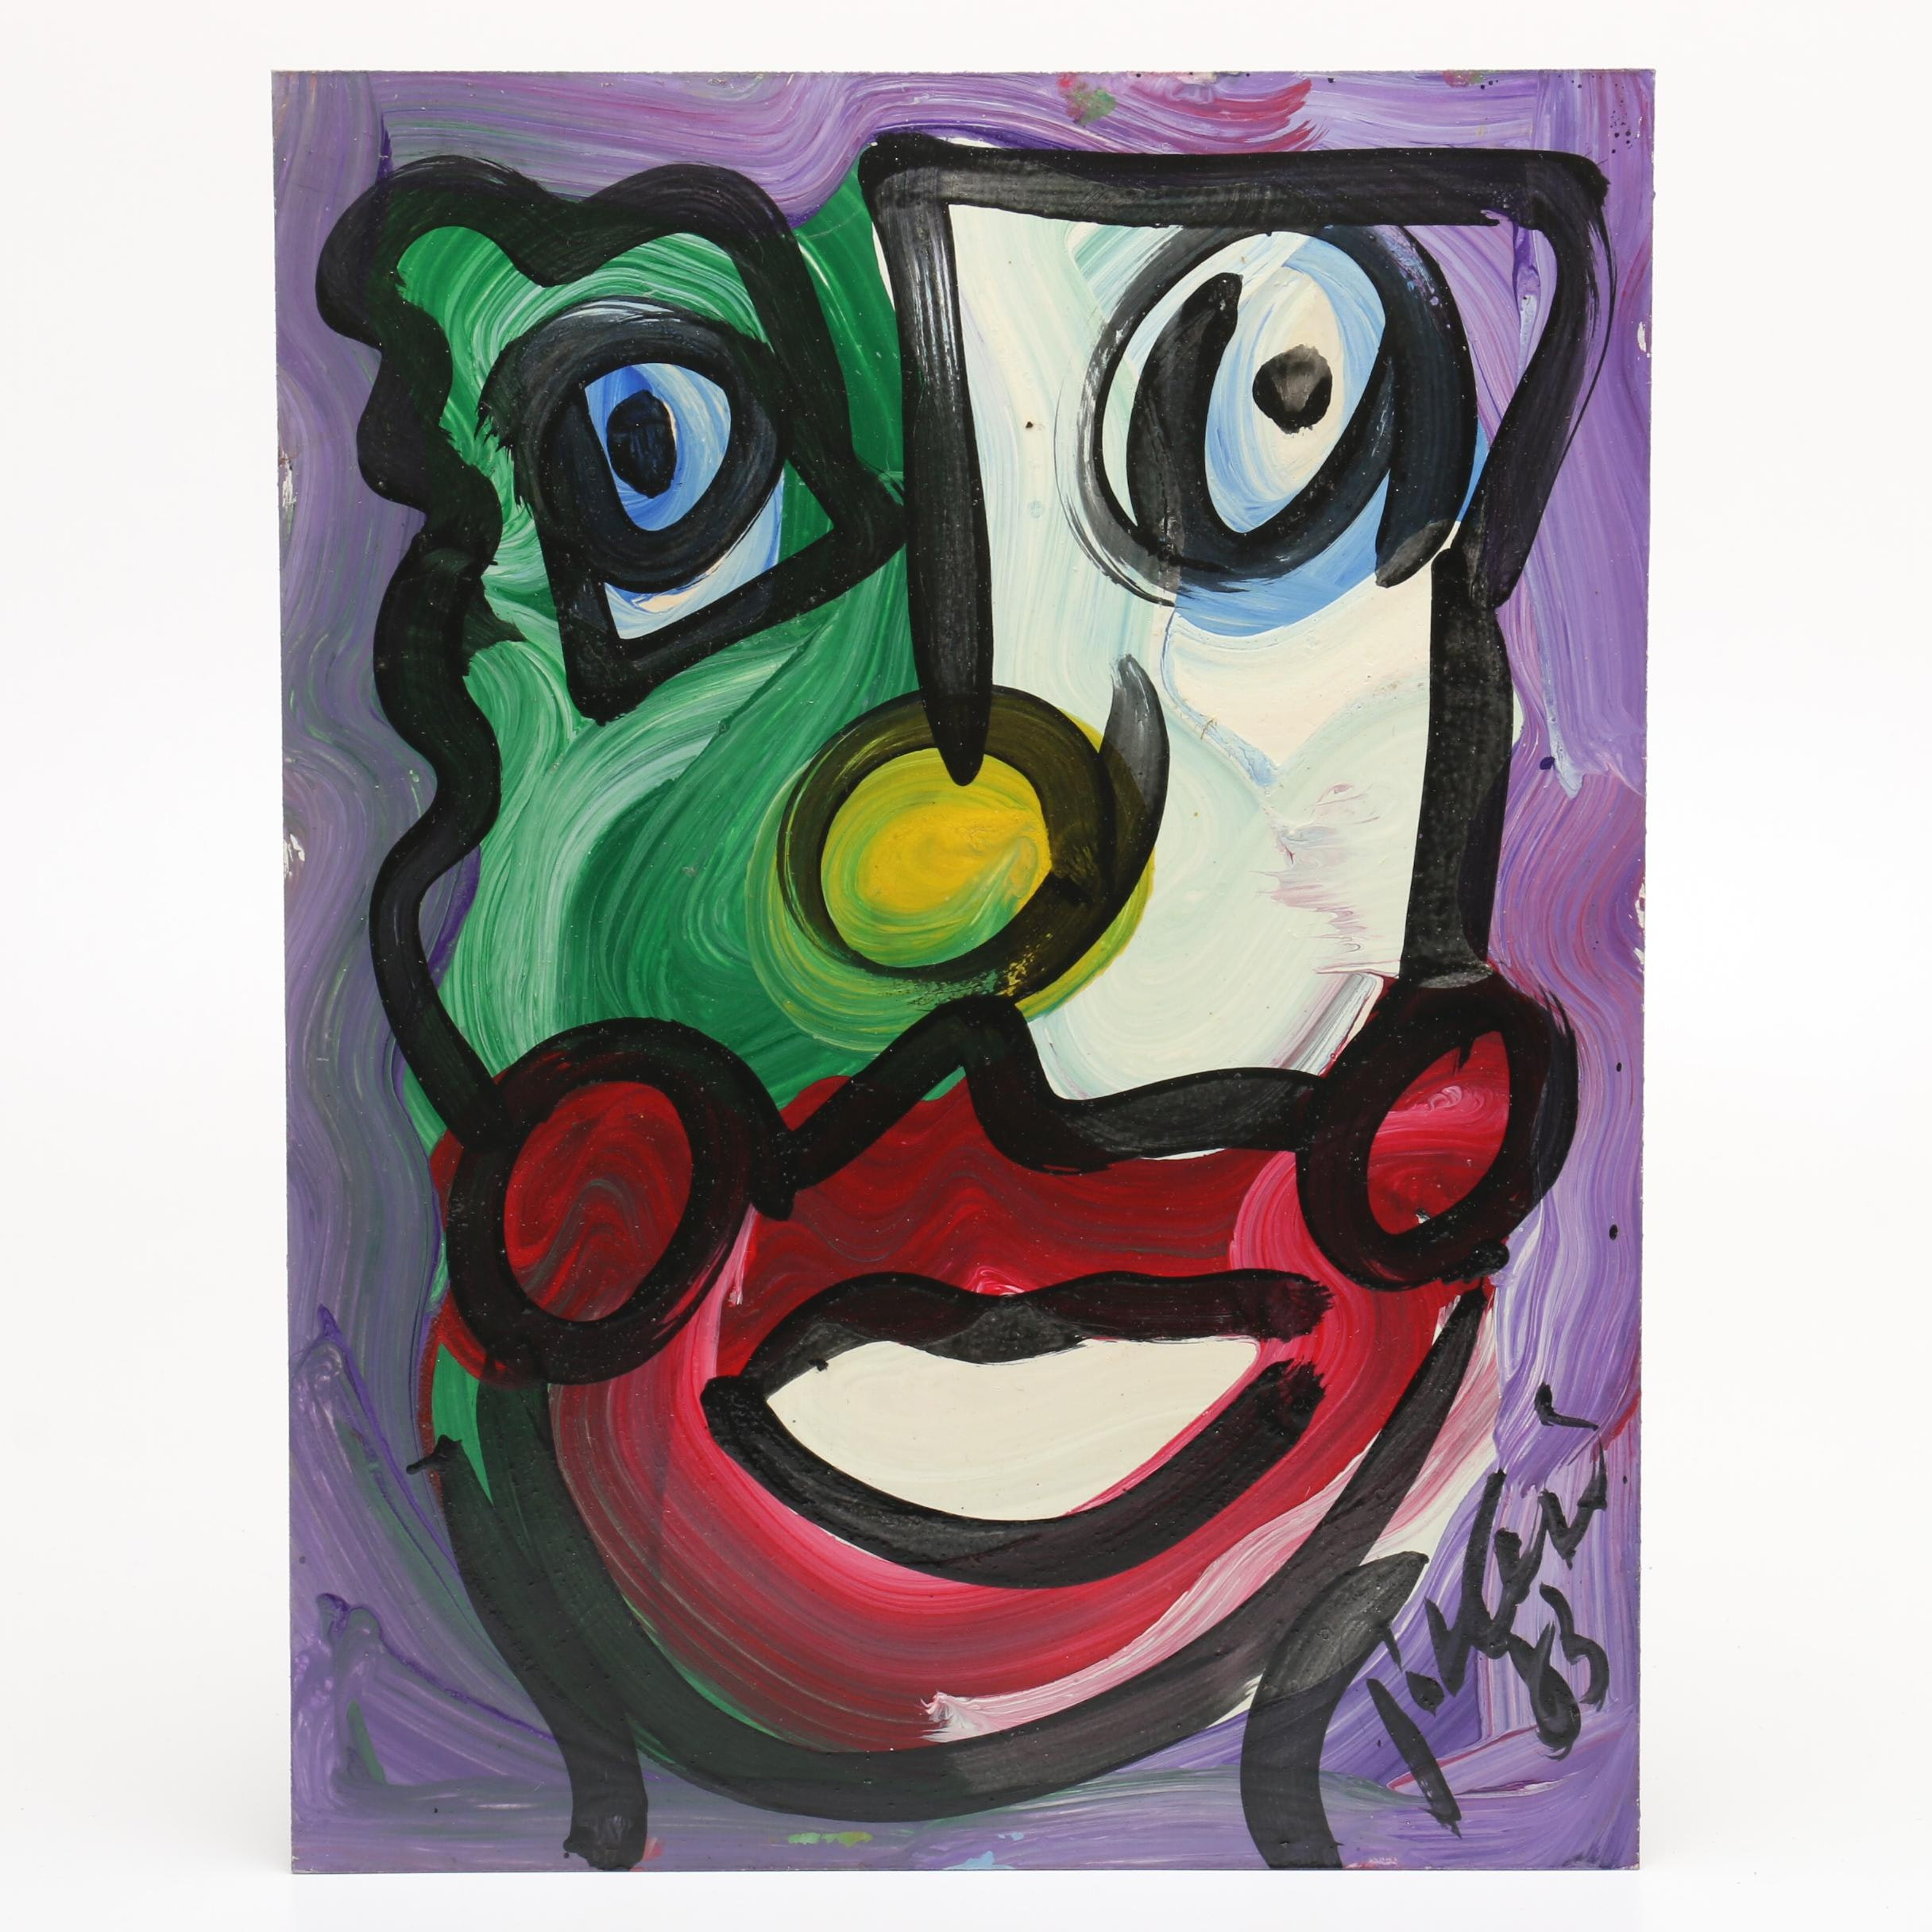 Peter Keil 1983 Abstract Oil Portrait of Clown